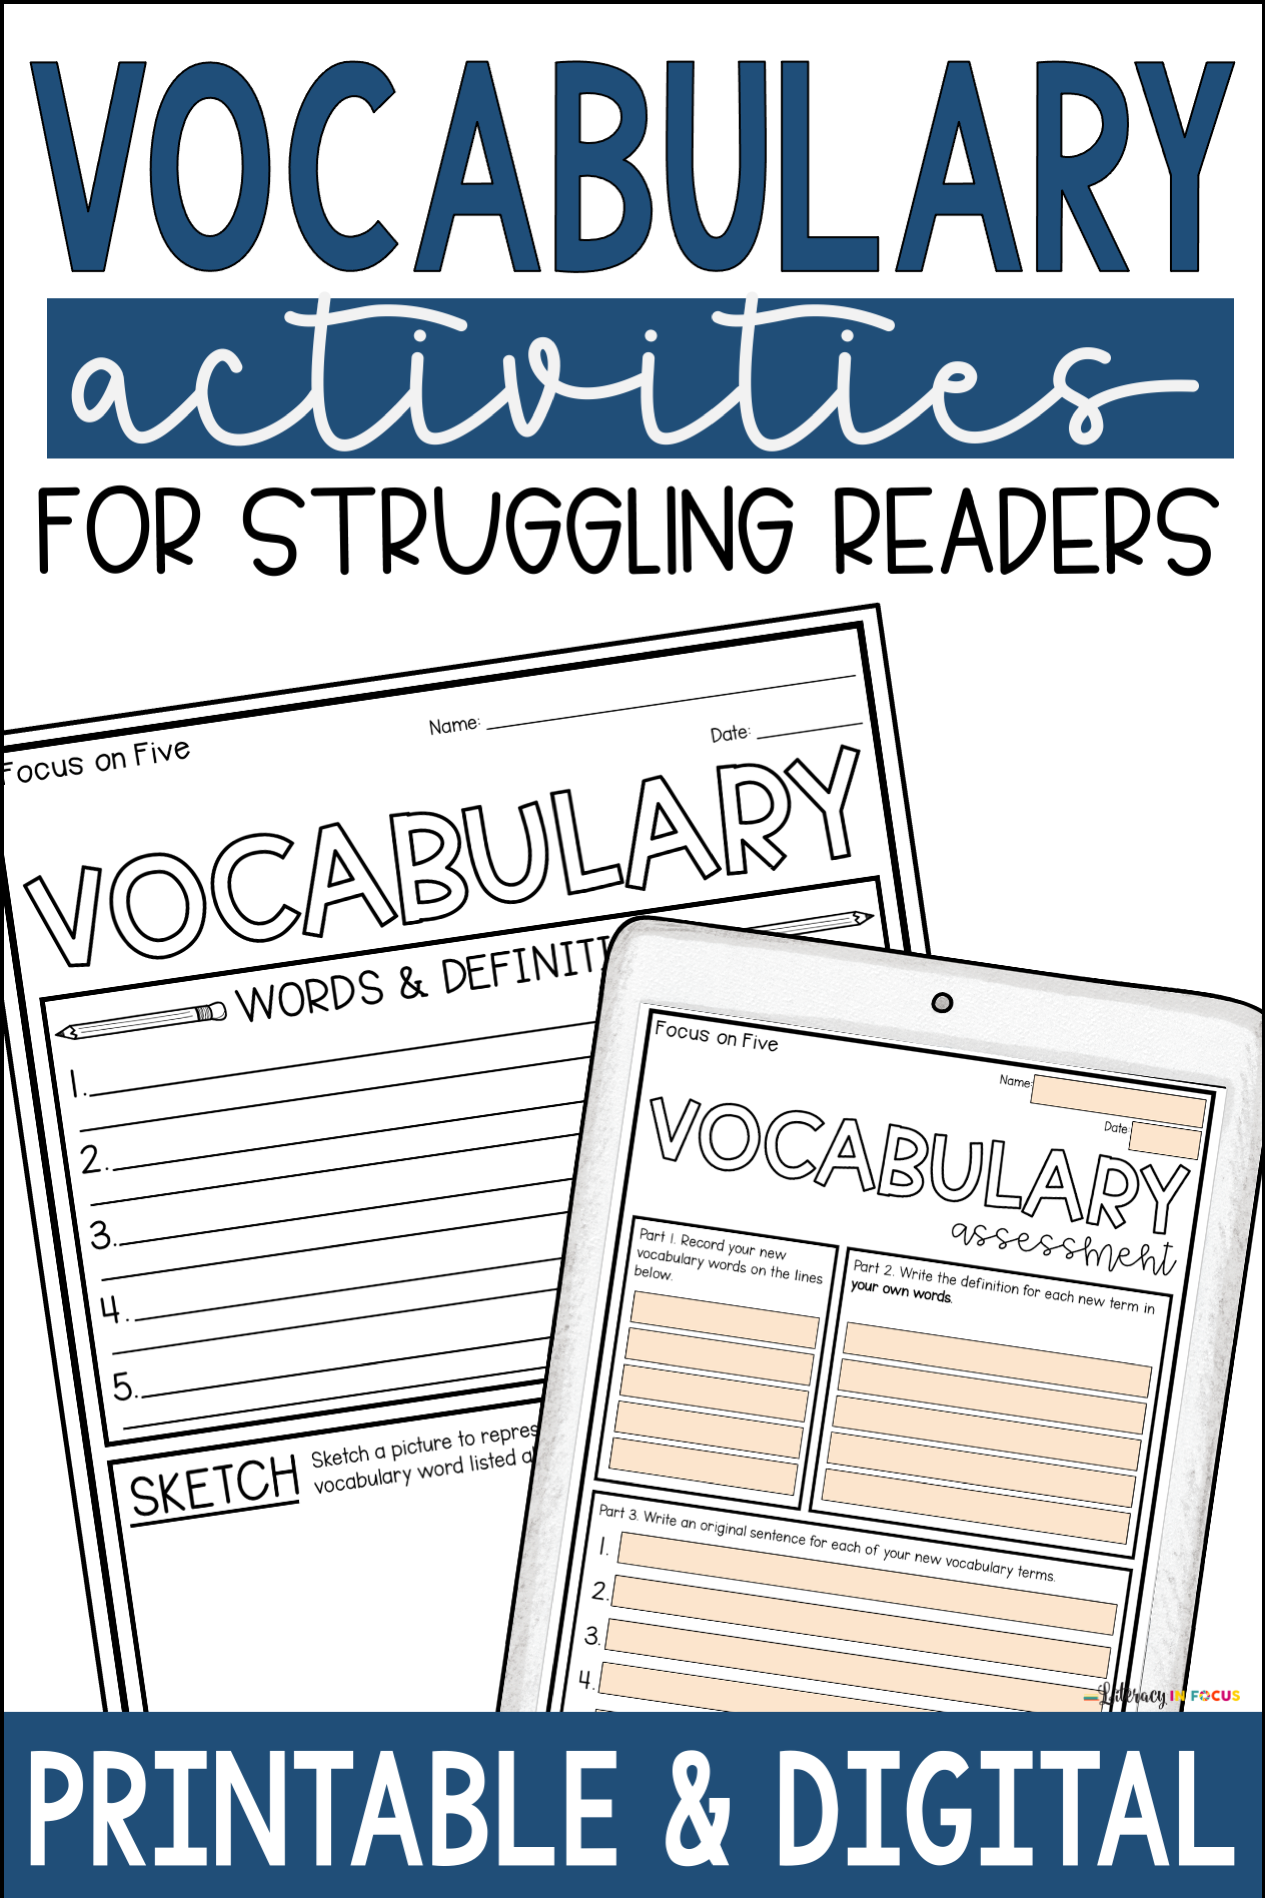 small resolution of Vocabulary Worksheets for Elementary and Middle School Students    Vocabulary activities